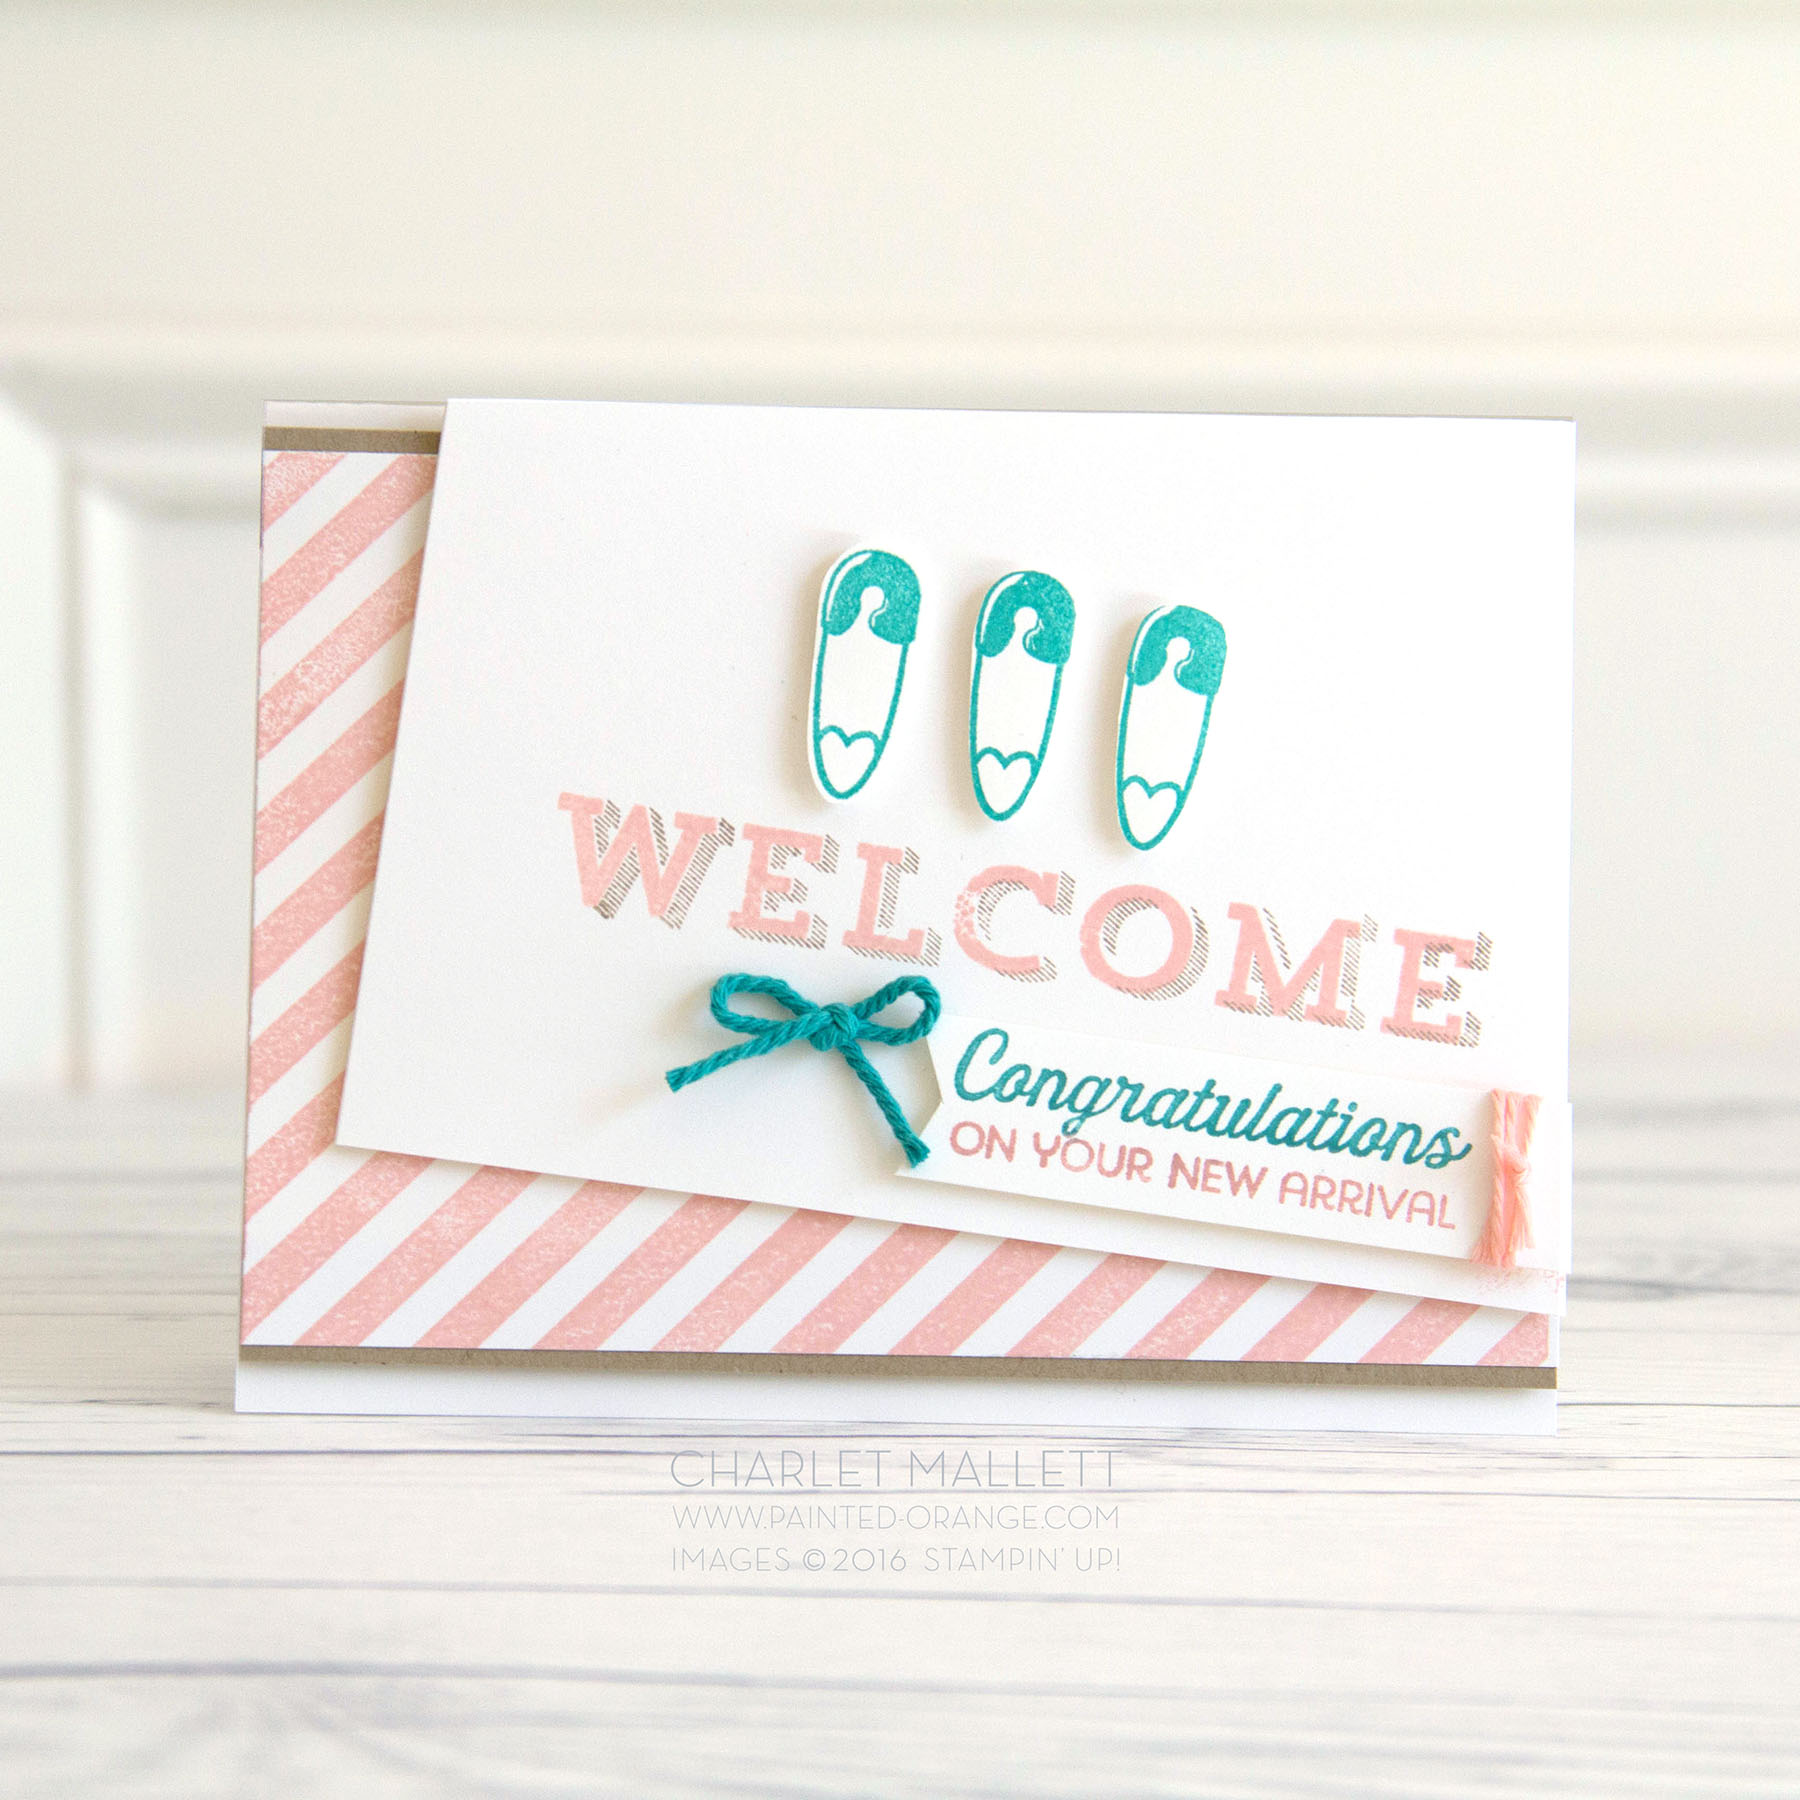 WELCOME baby card using Better Together, Diagonal Stripe and Vertical Garden stamp sets. Stampin' Up! Charlet Mallett - www.painted-orange.com